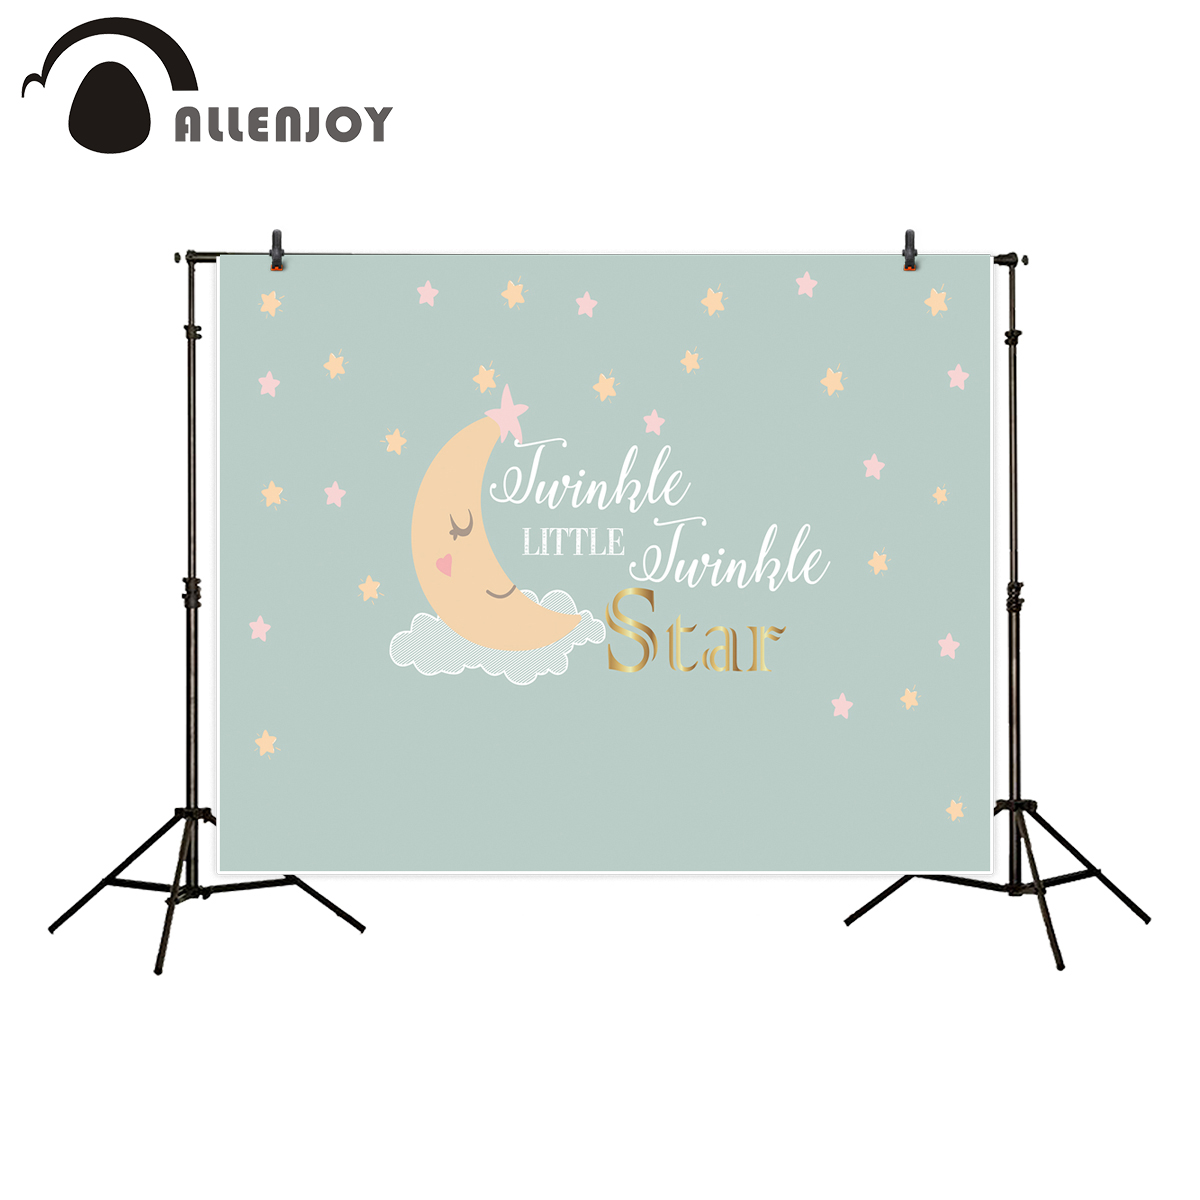 Allenjoy photography background twinkle twinkle little star baby stars heart moon backdrop photo studio photocall crooked little heart